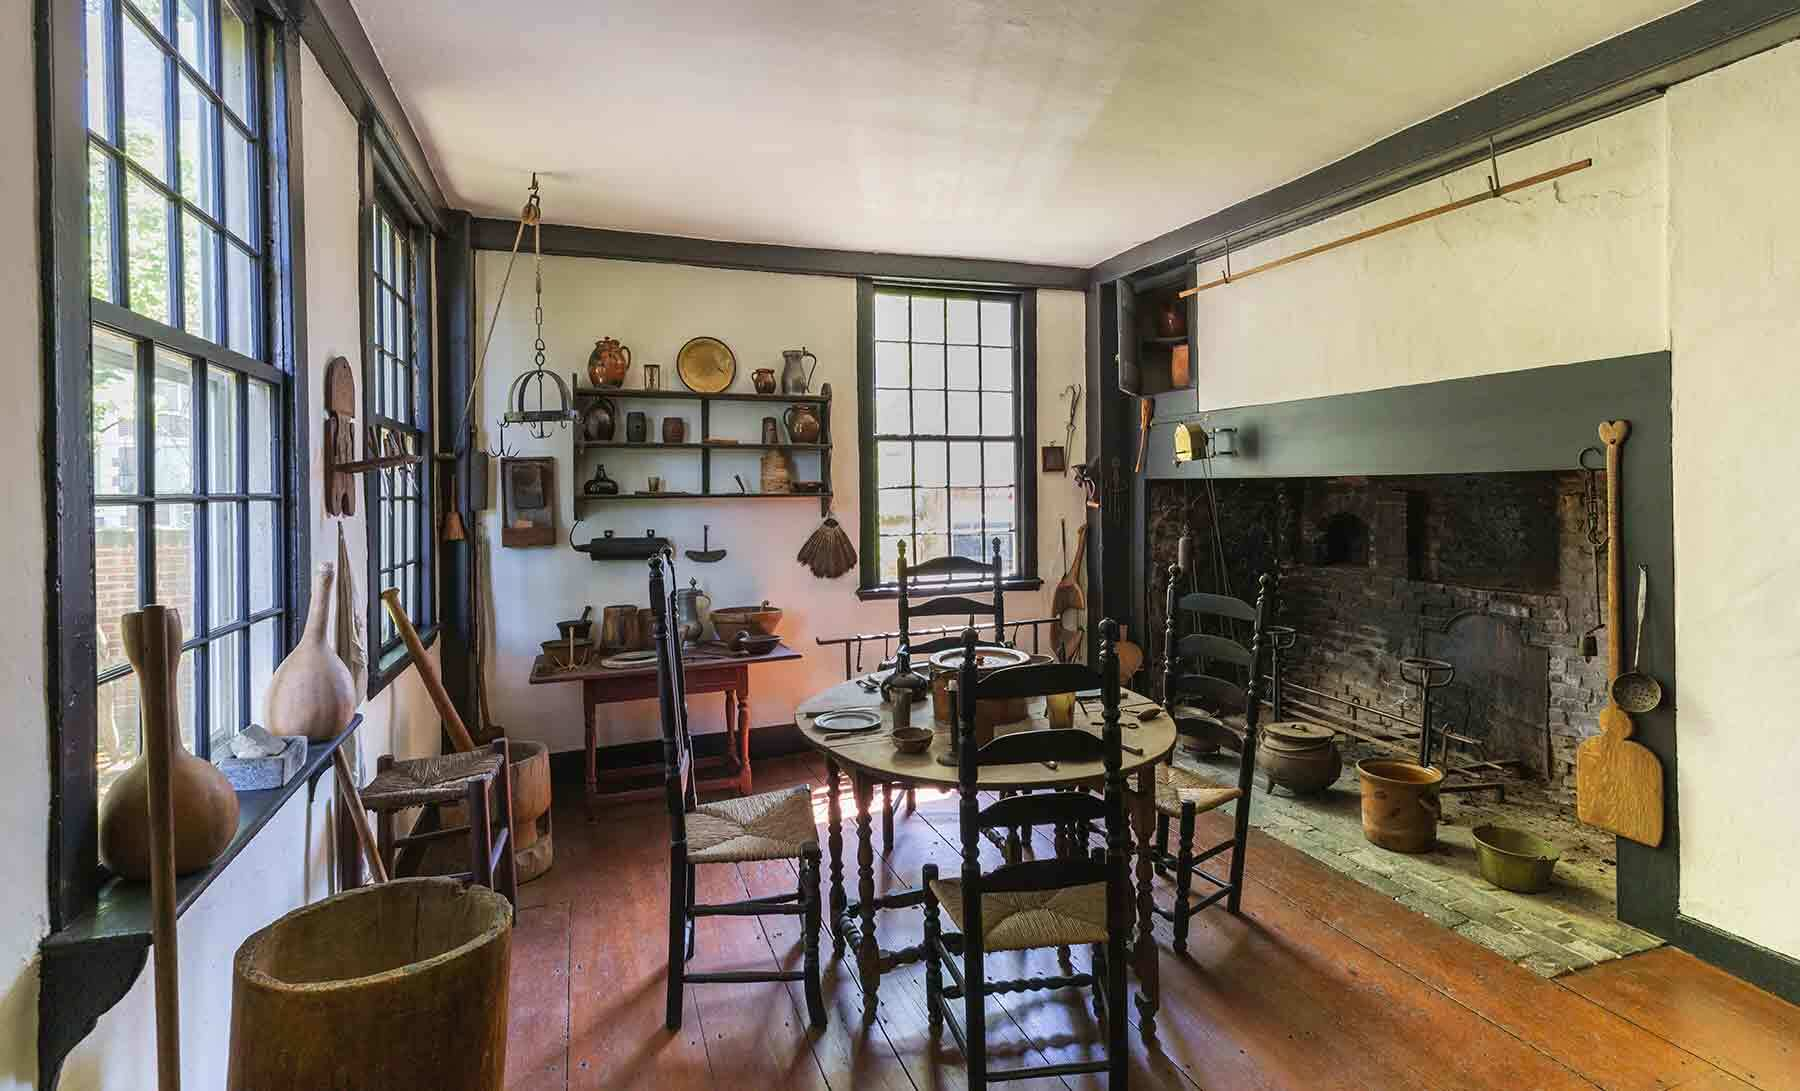 View of a kitchen and living room in a historic house